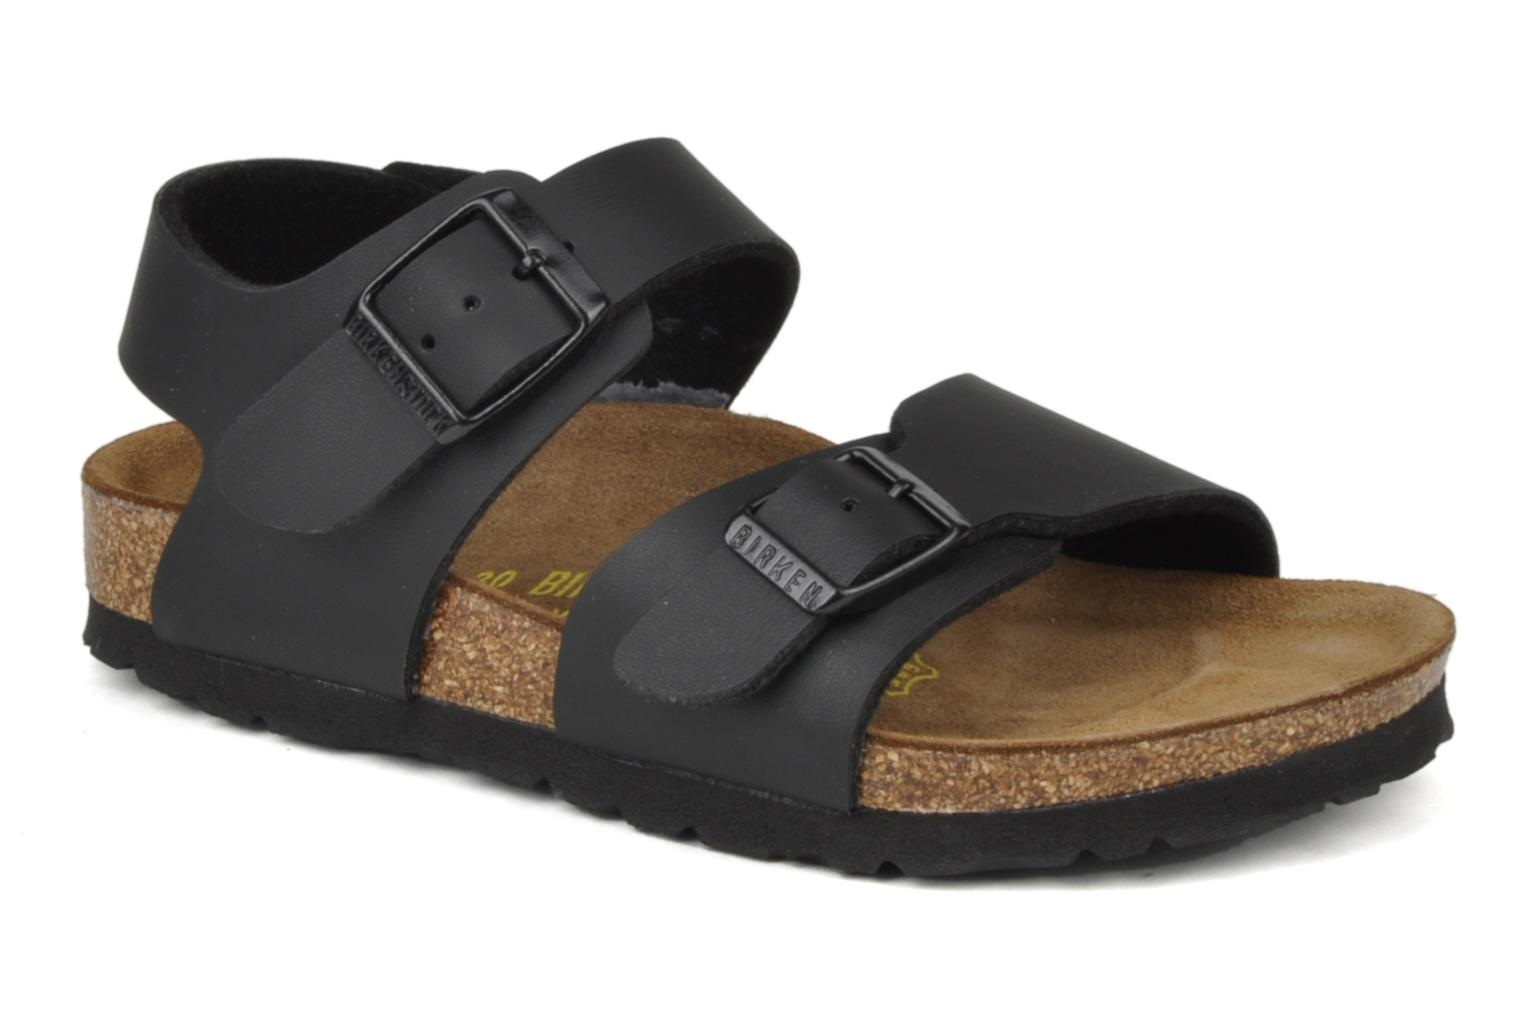 birkenstock new york flor e sandals in black at